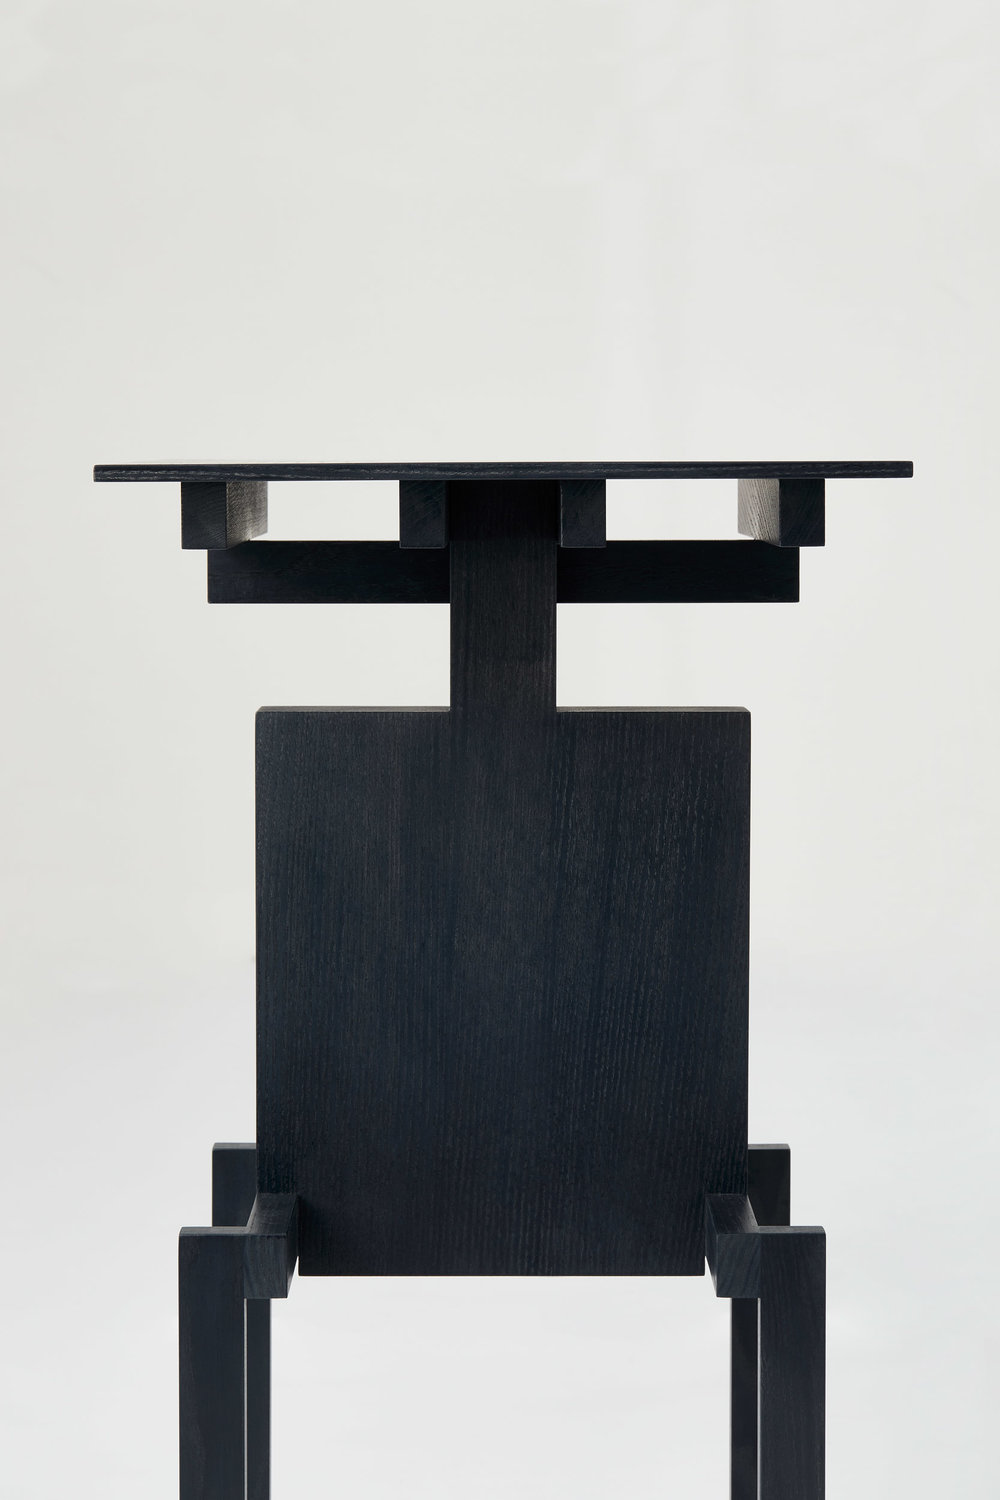 Studio-Pascal-Howe_Covered-Identity-Side-Table_details04_web.jpg